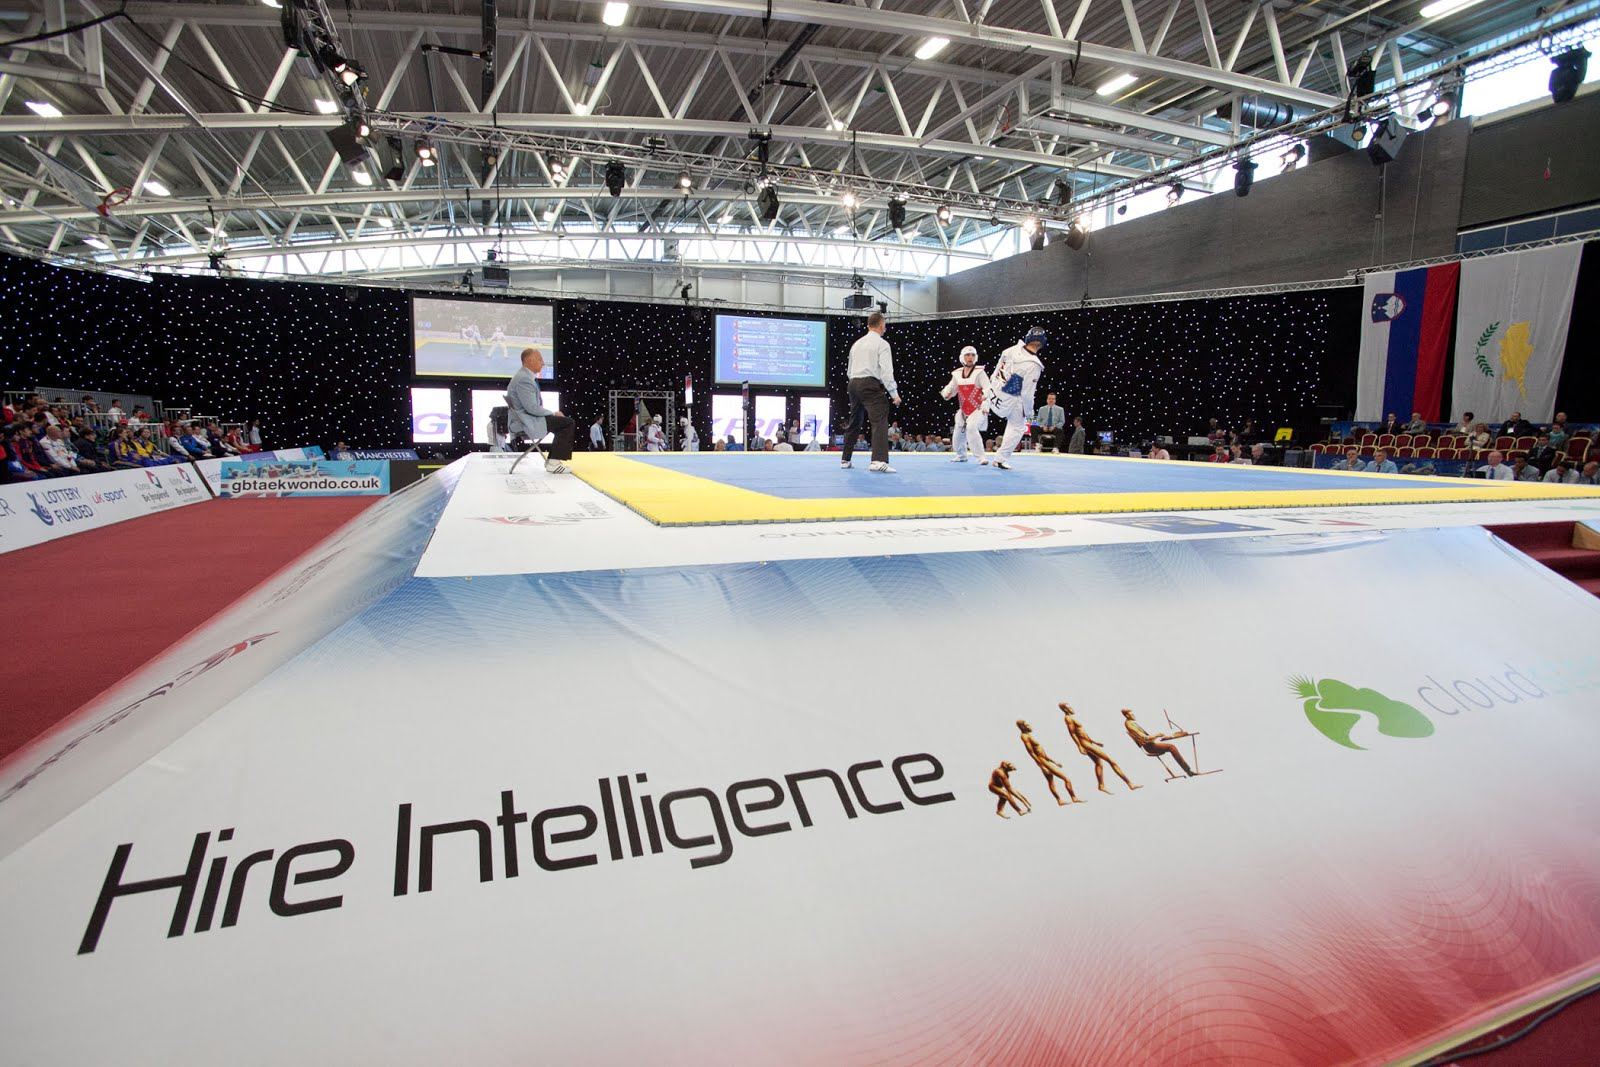 Hire Intelligence will remain as official technology rental partner for British Taekwondo for a second year with the responsibility of supplying information technology and audio visual equipment for live events.